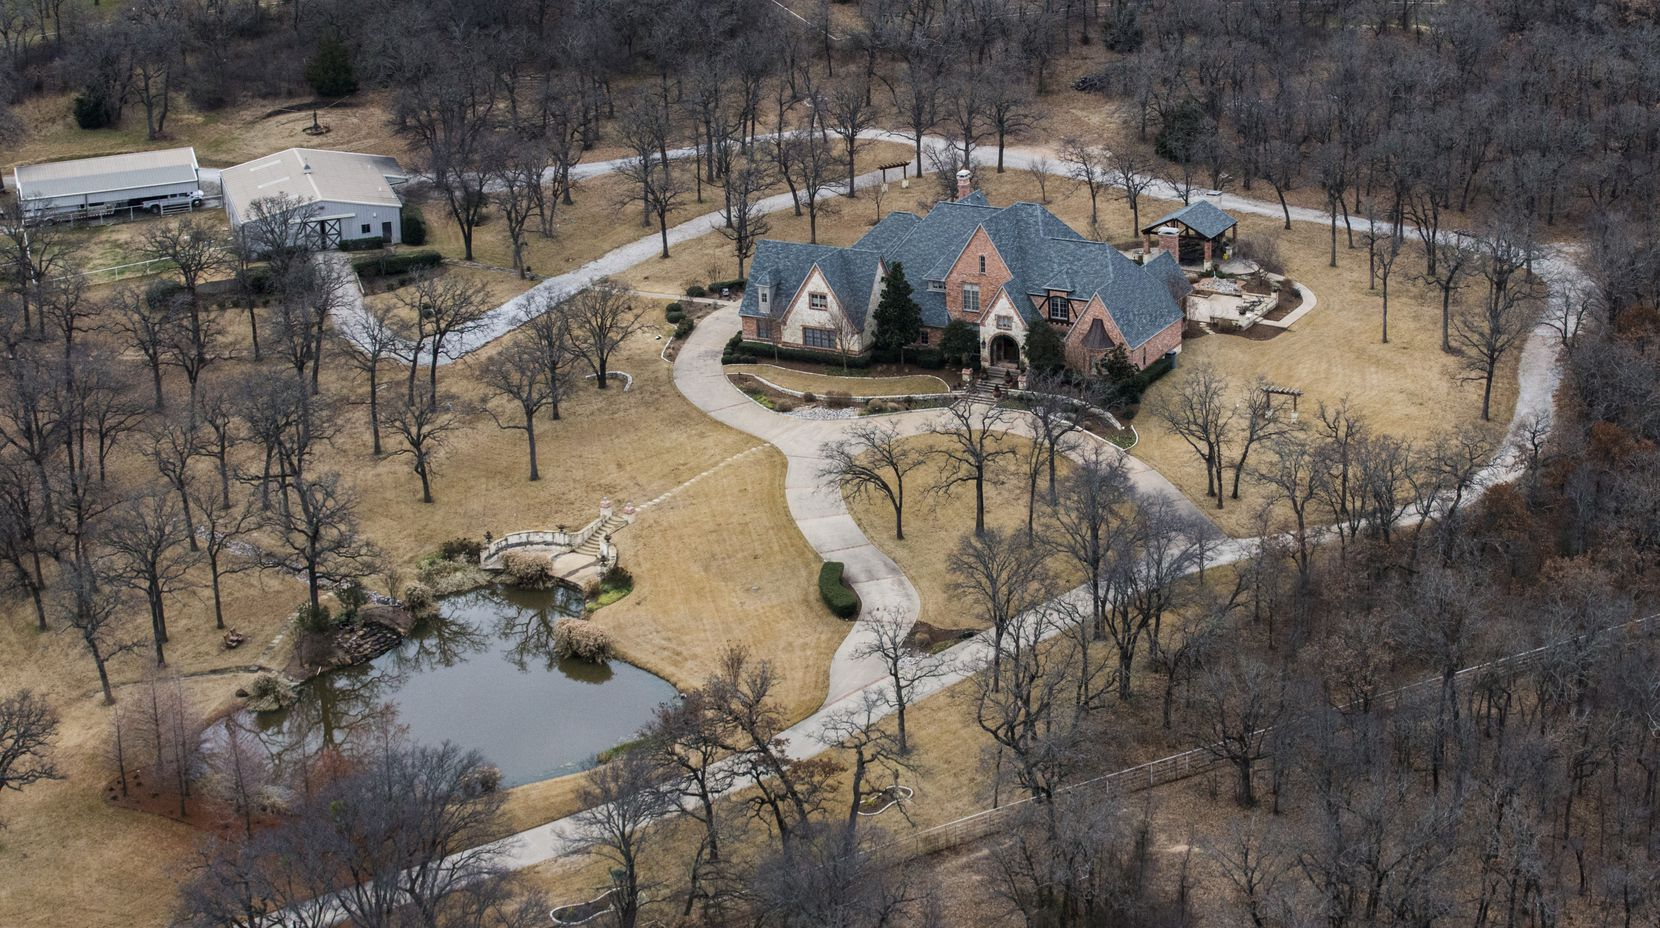 The home of ExxonMobil CEO Rex Tillerson on Wednesday, January 4, 2017 in Bartonville, Texas.